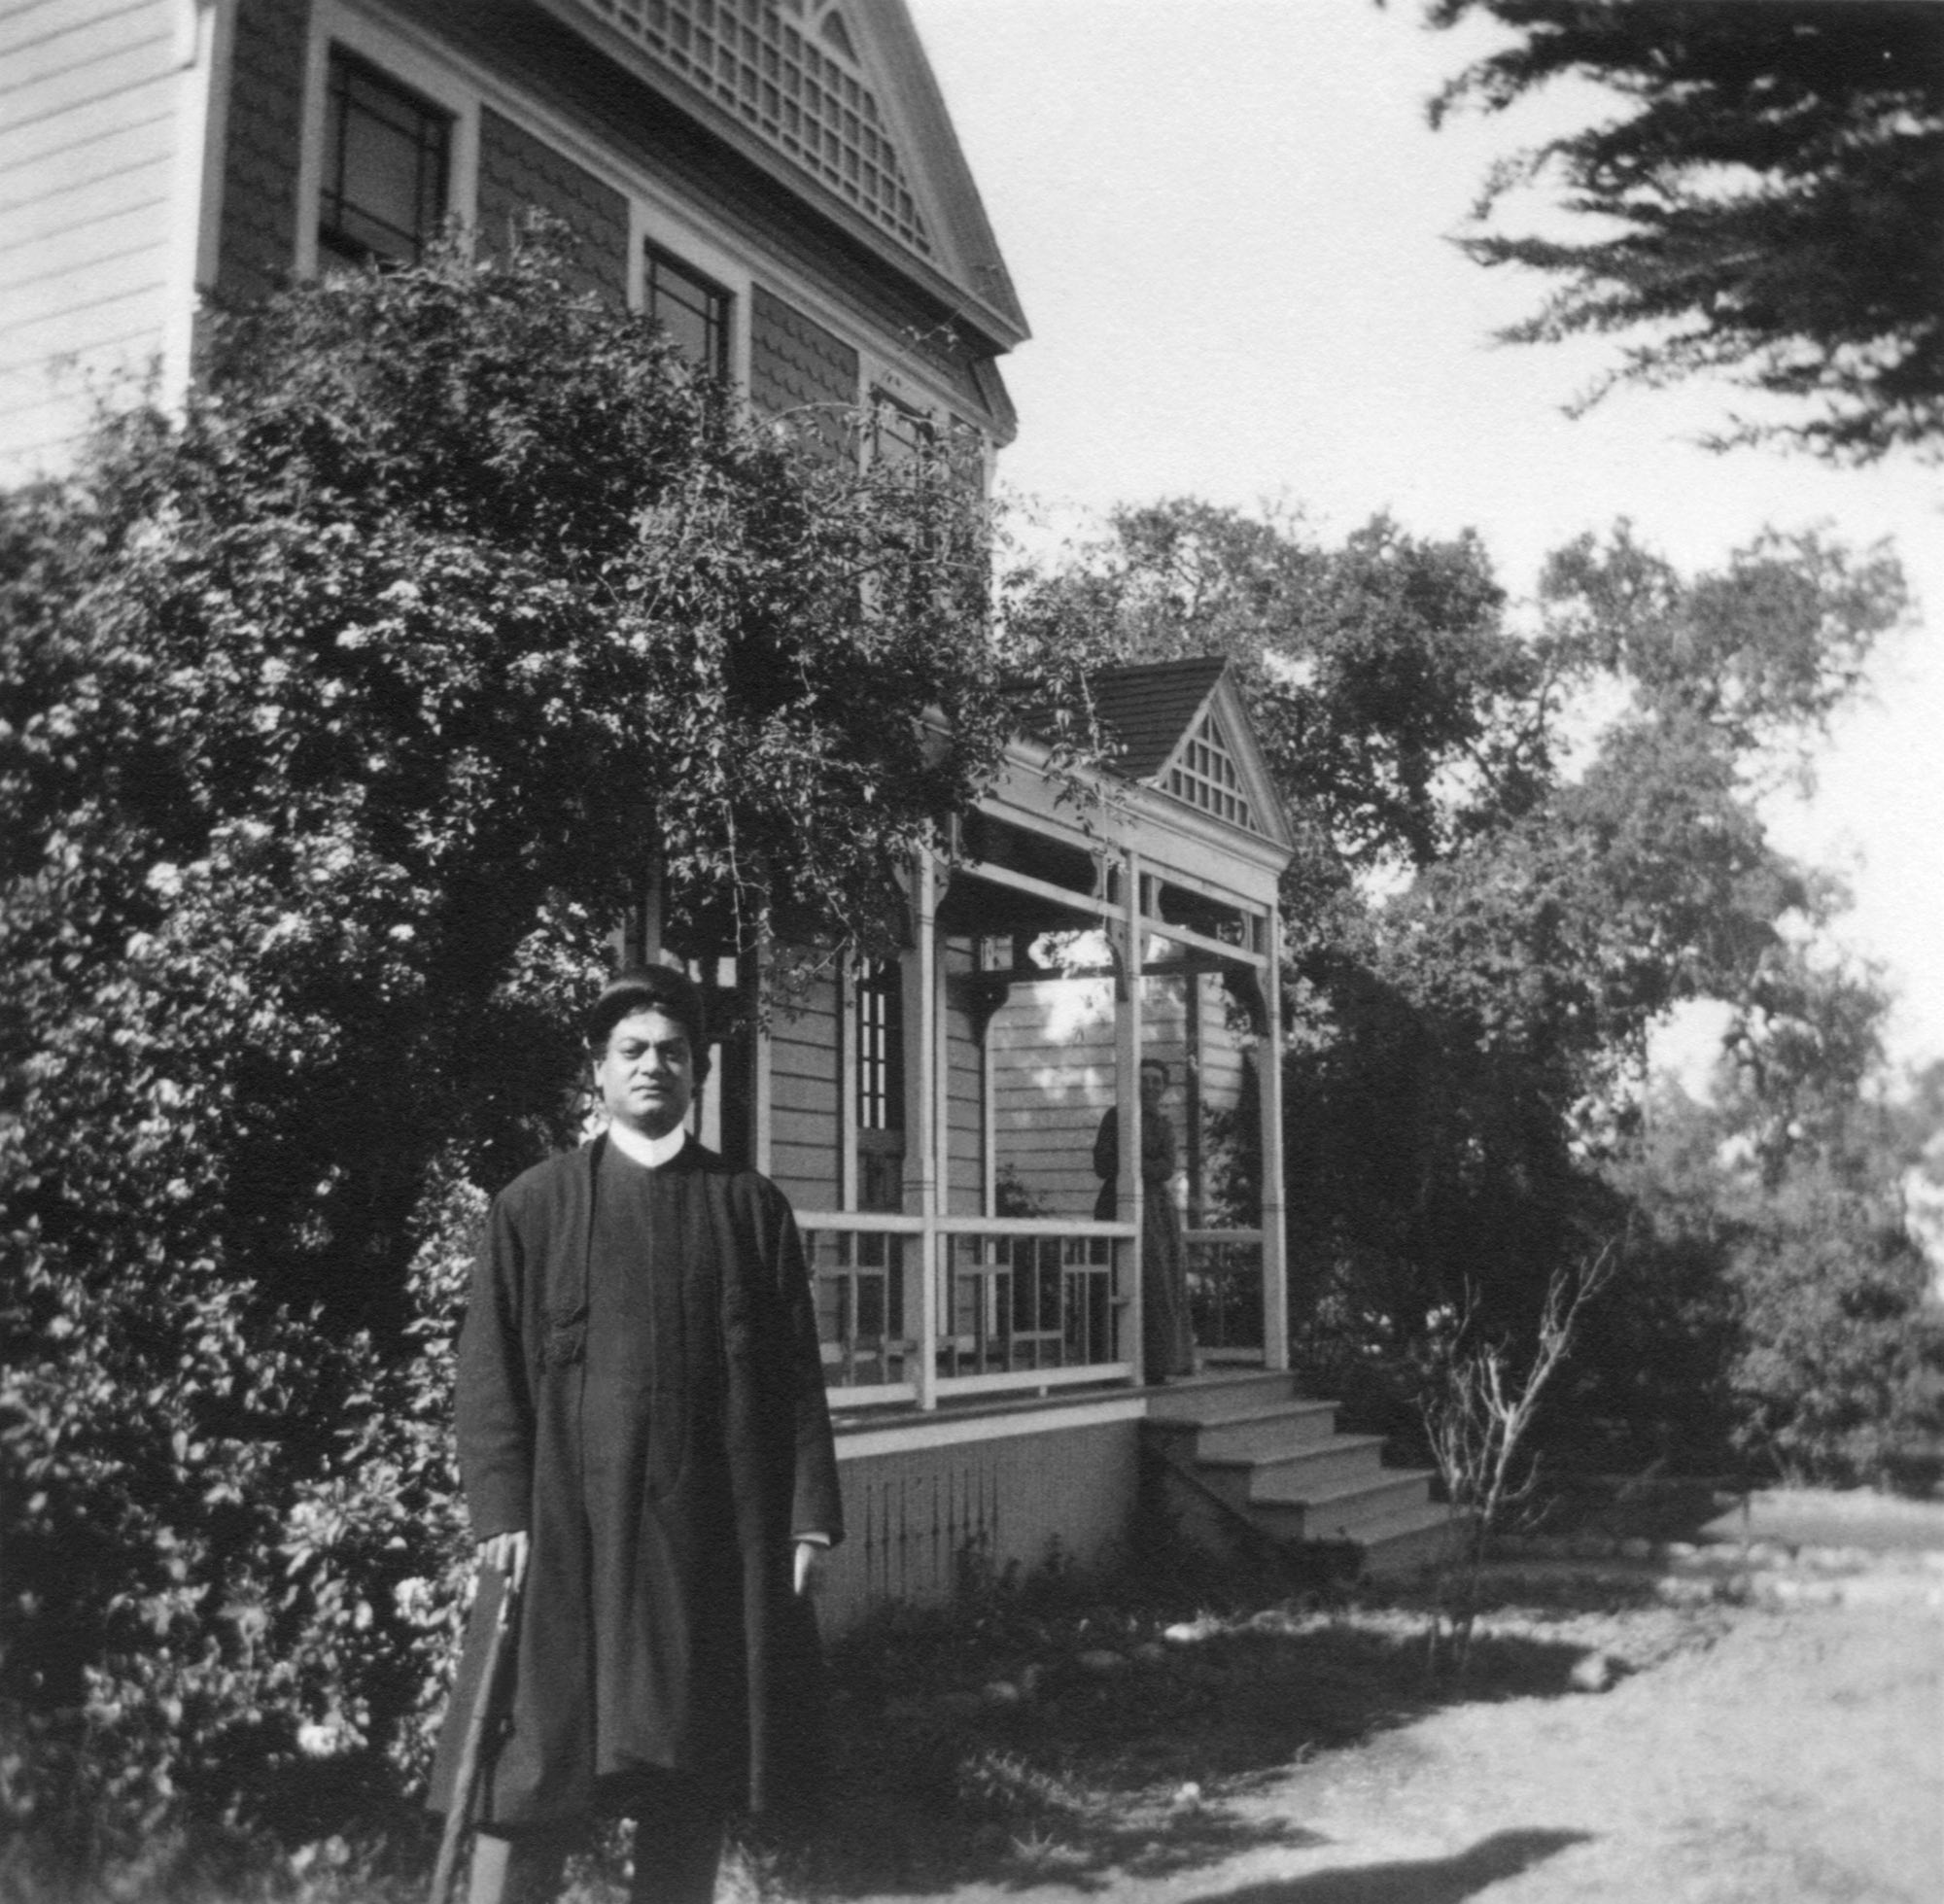 (#81) South Pasadena, California. January 1900. The house, now known as the  Vivekananda House , is located at 309 Monterey Road.